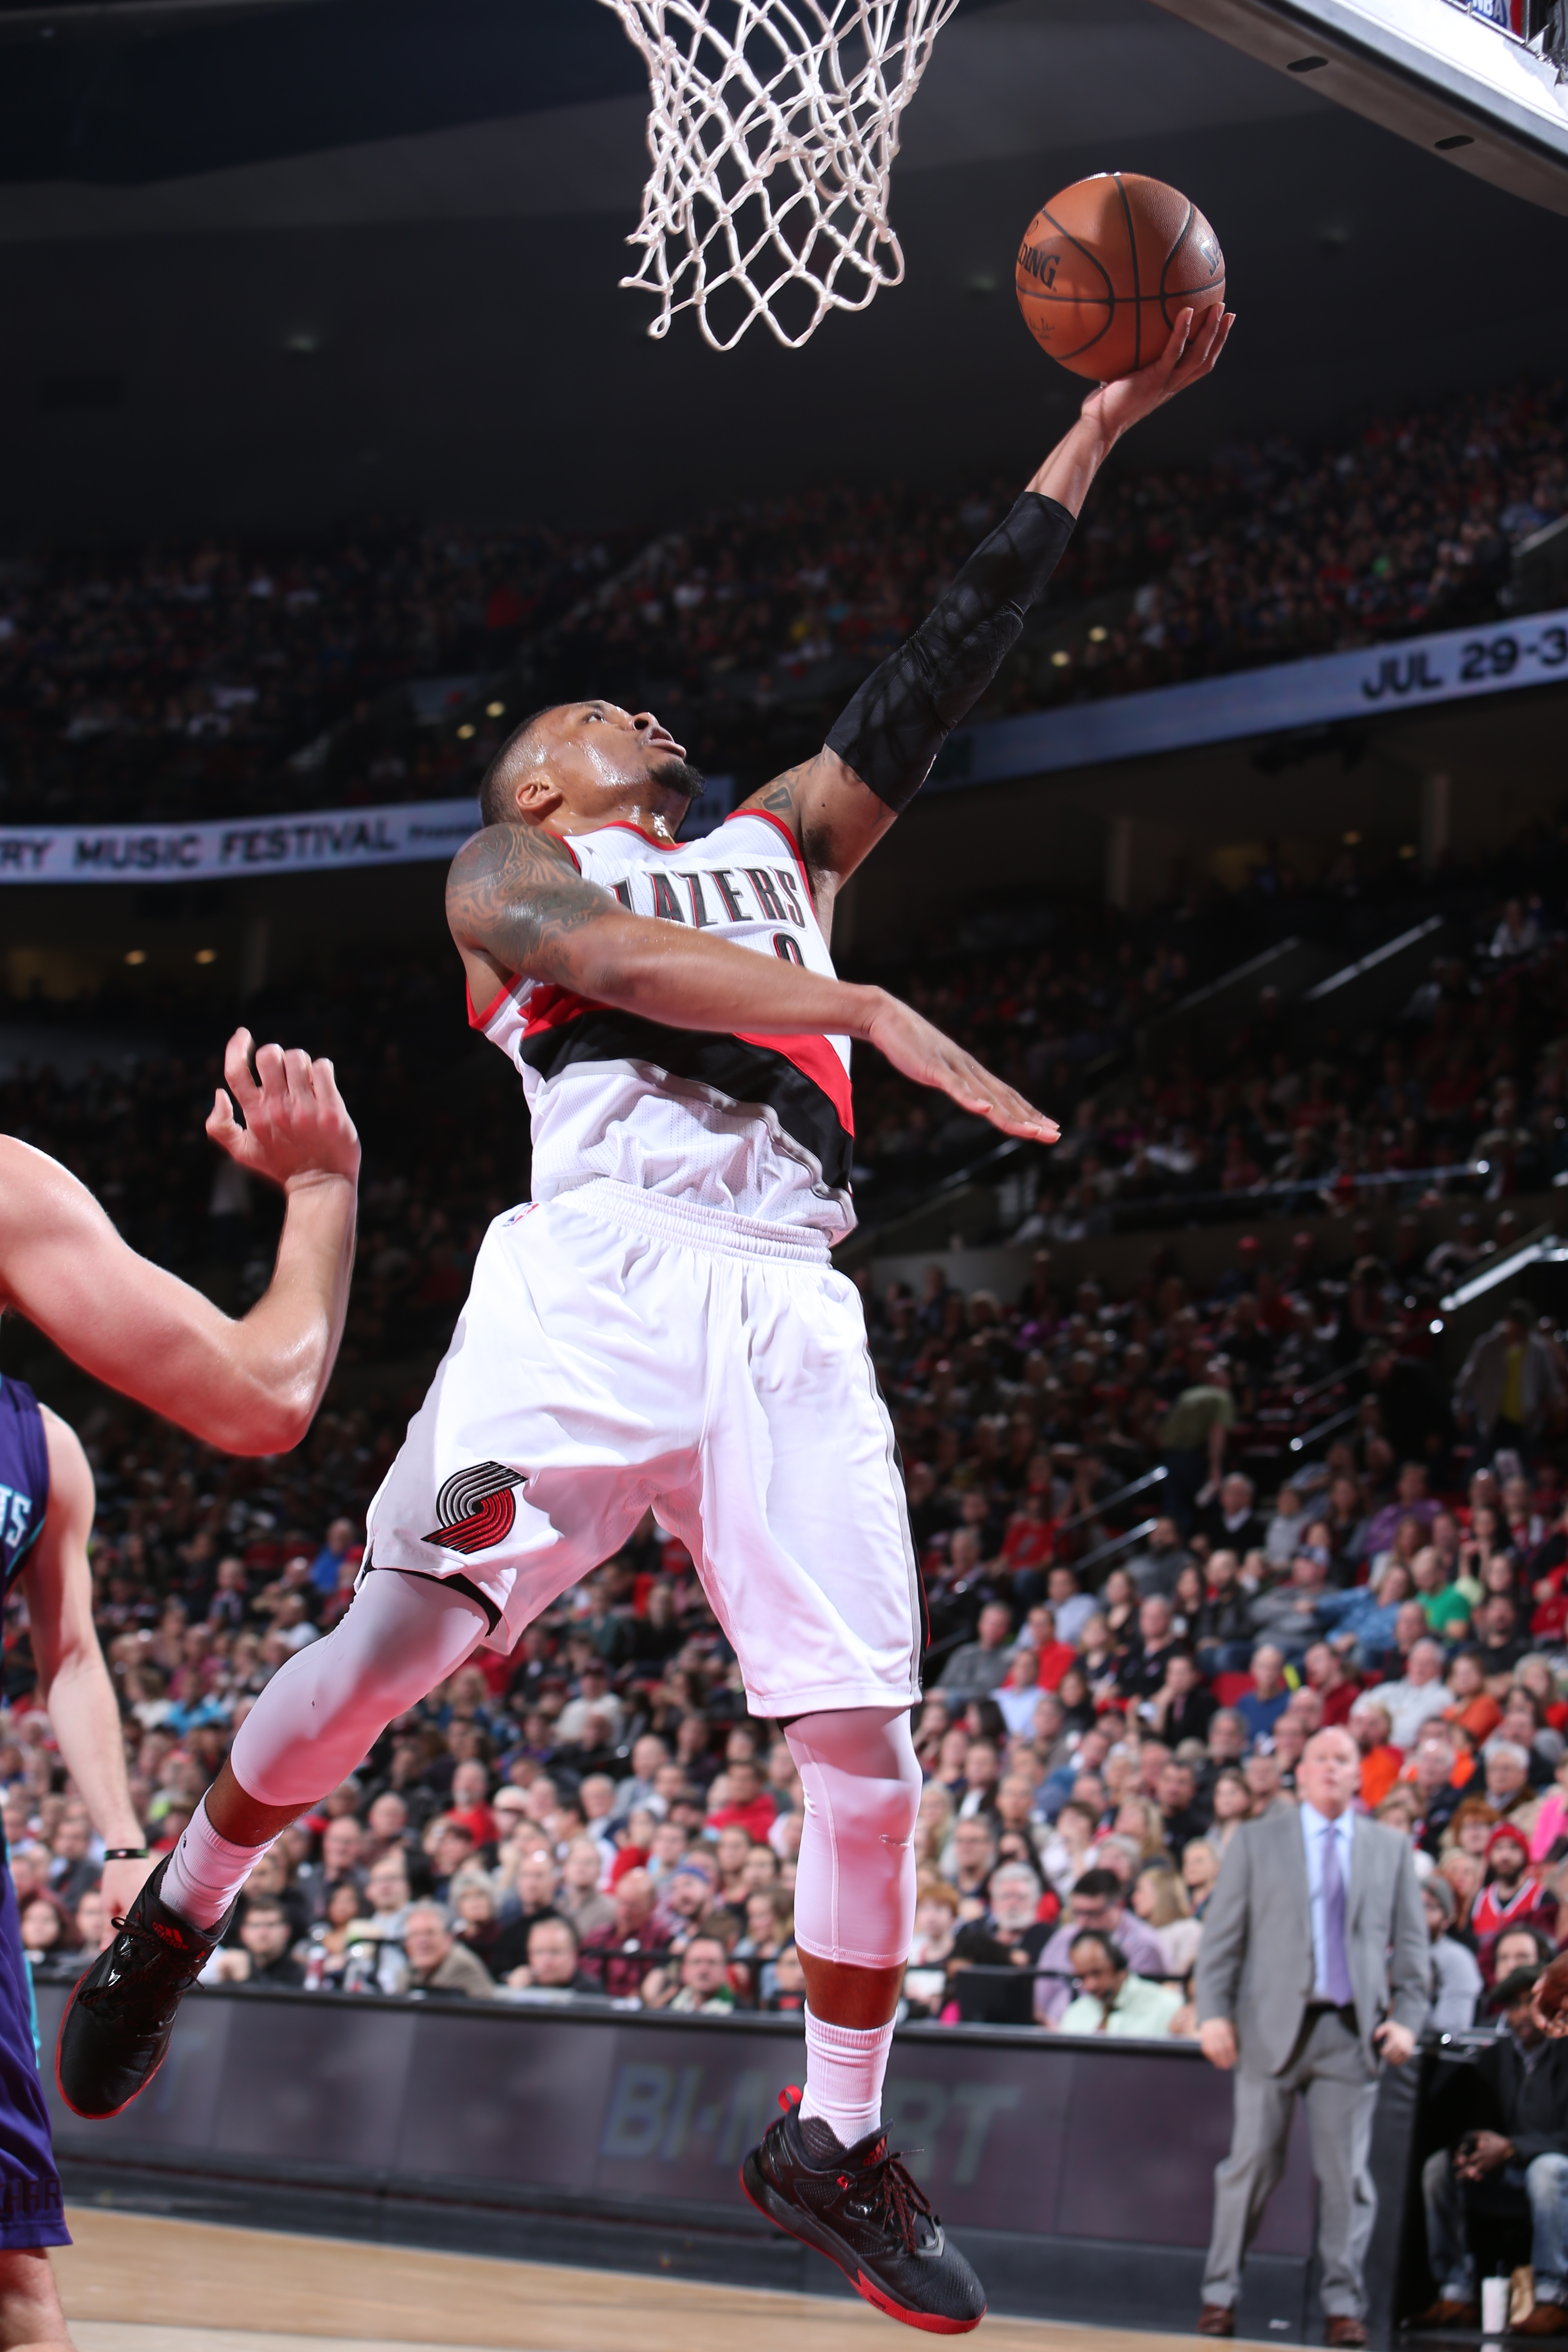 PORTLAND, OR - JANUARY 29: Damian Lillard #0 of the Portland Trail Blazers goes for the lay up against the Charlotte Hornets during the game on January 29, 2016 at Moda Center in Portland, Michigan. (Photo by Sam Forencich/NBAE via Getty Images)